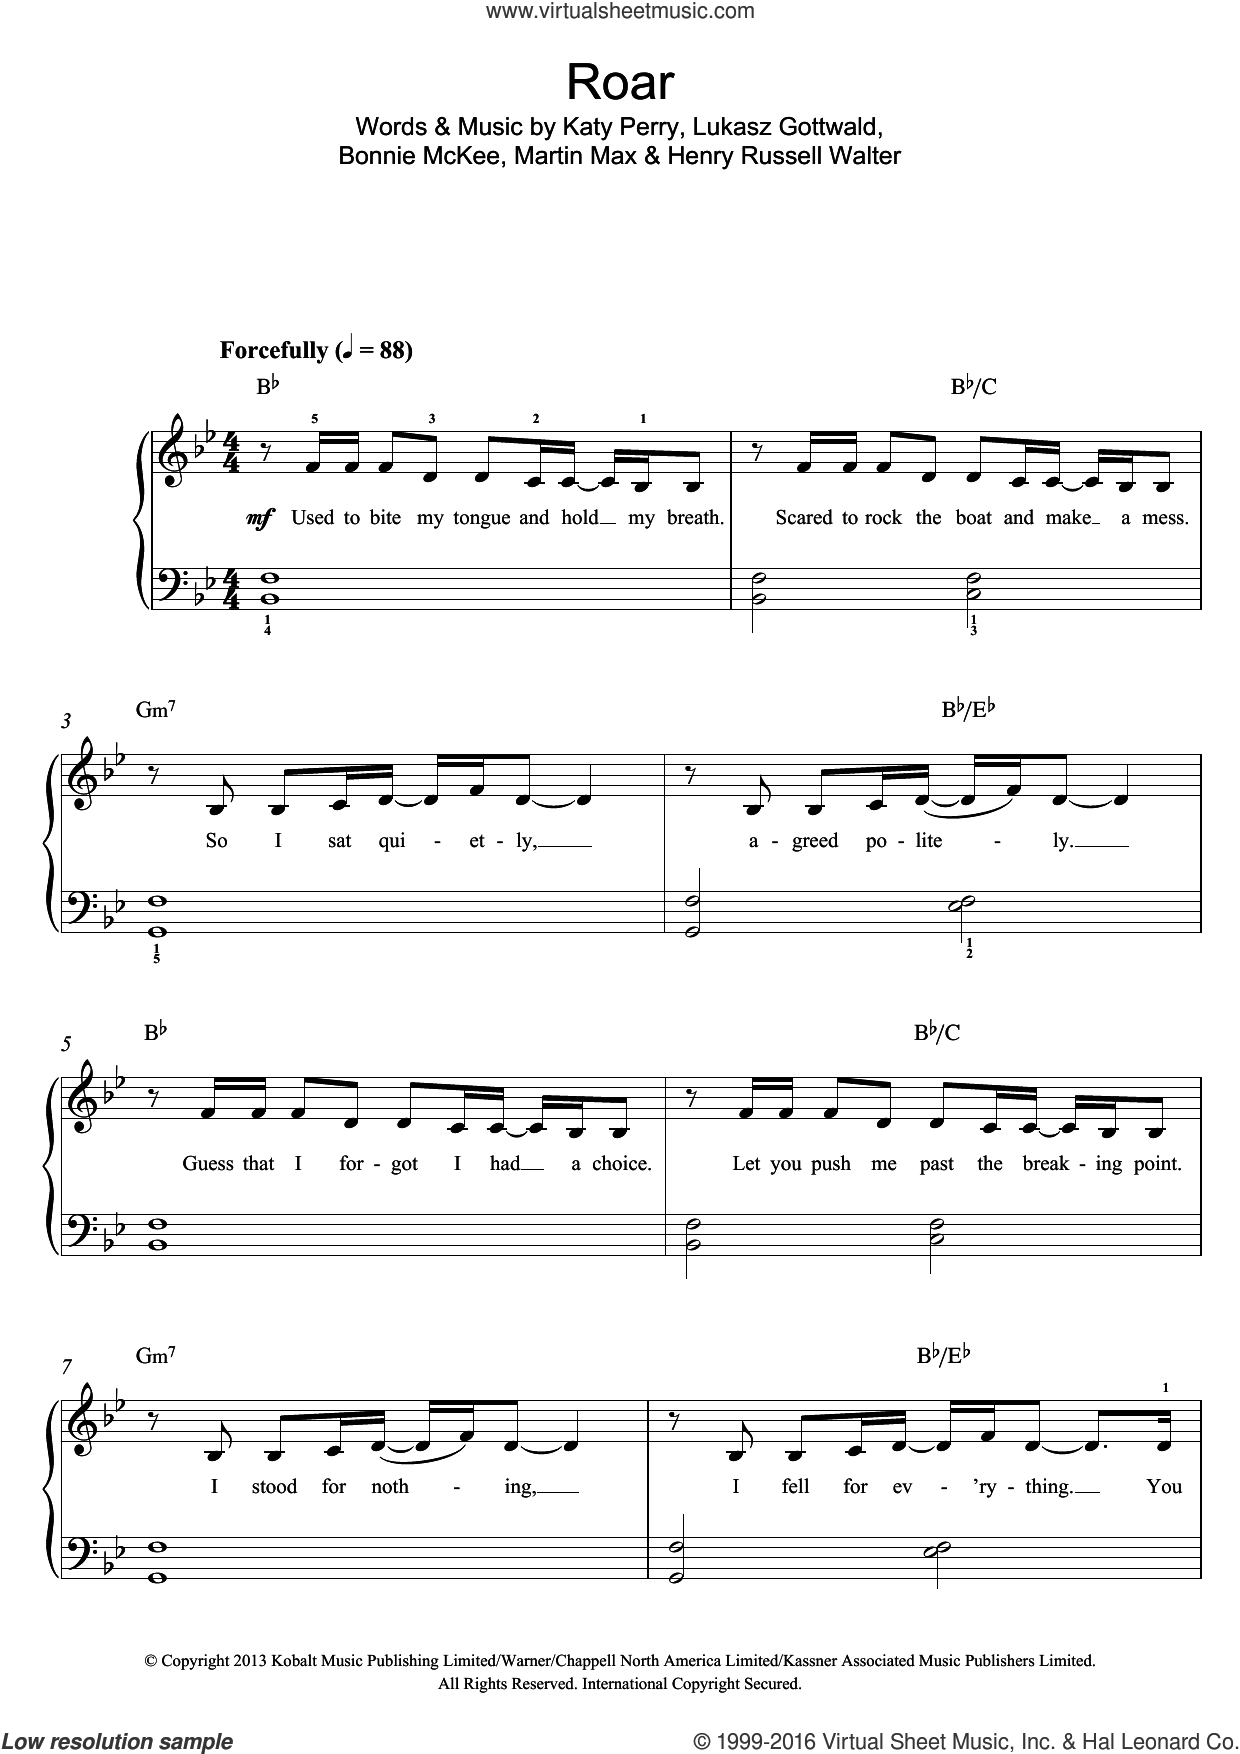 Roar sheet music for piano solo (beginners) by Katy Perry, Bonnie McKee, Henry Russell Walter, Lukasz Gottwald and Martin Max, beginner piano (beginners)